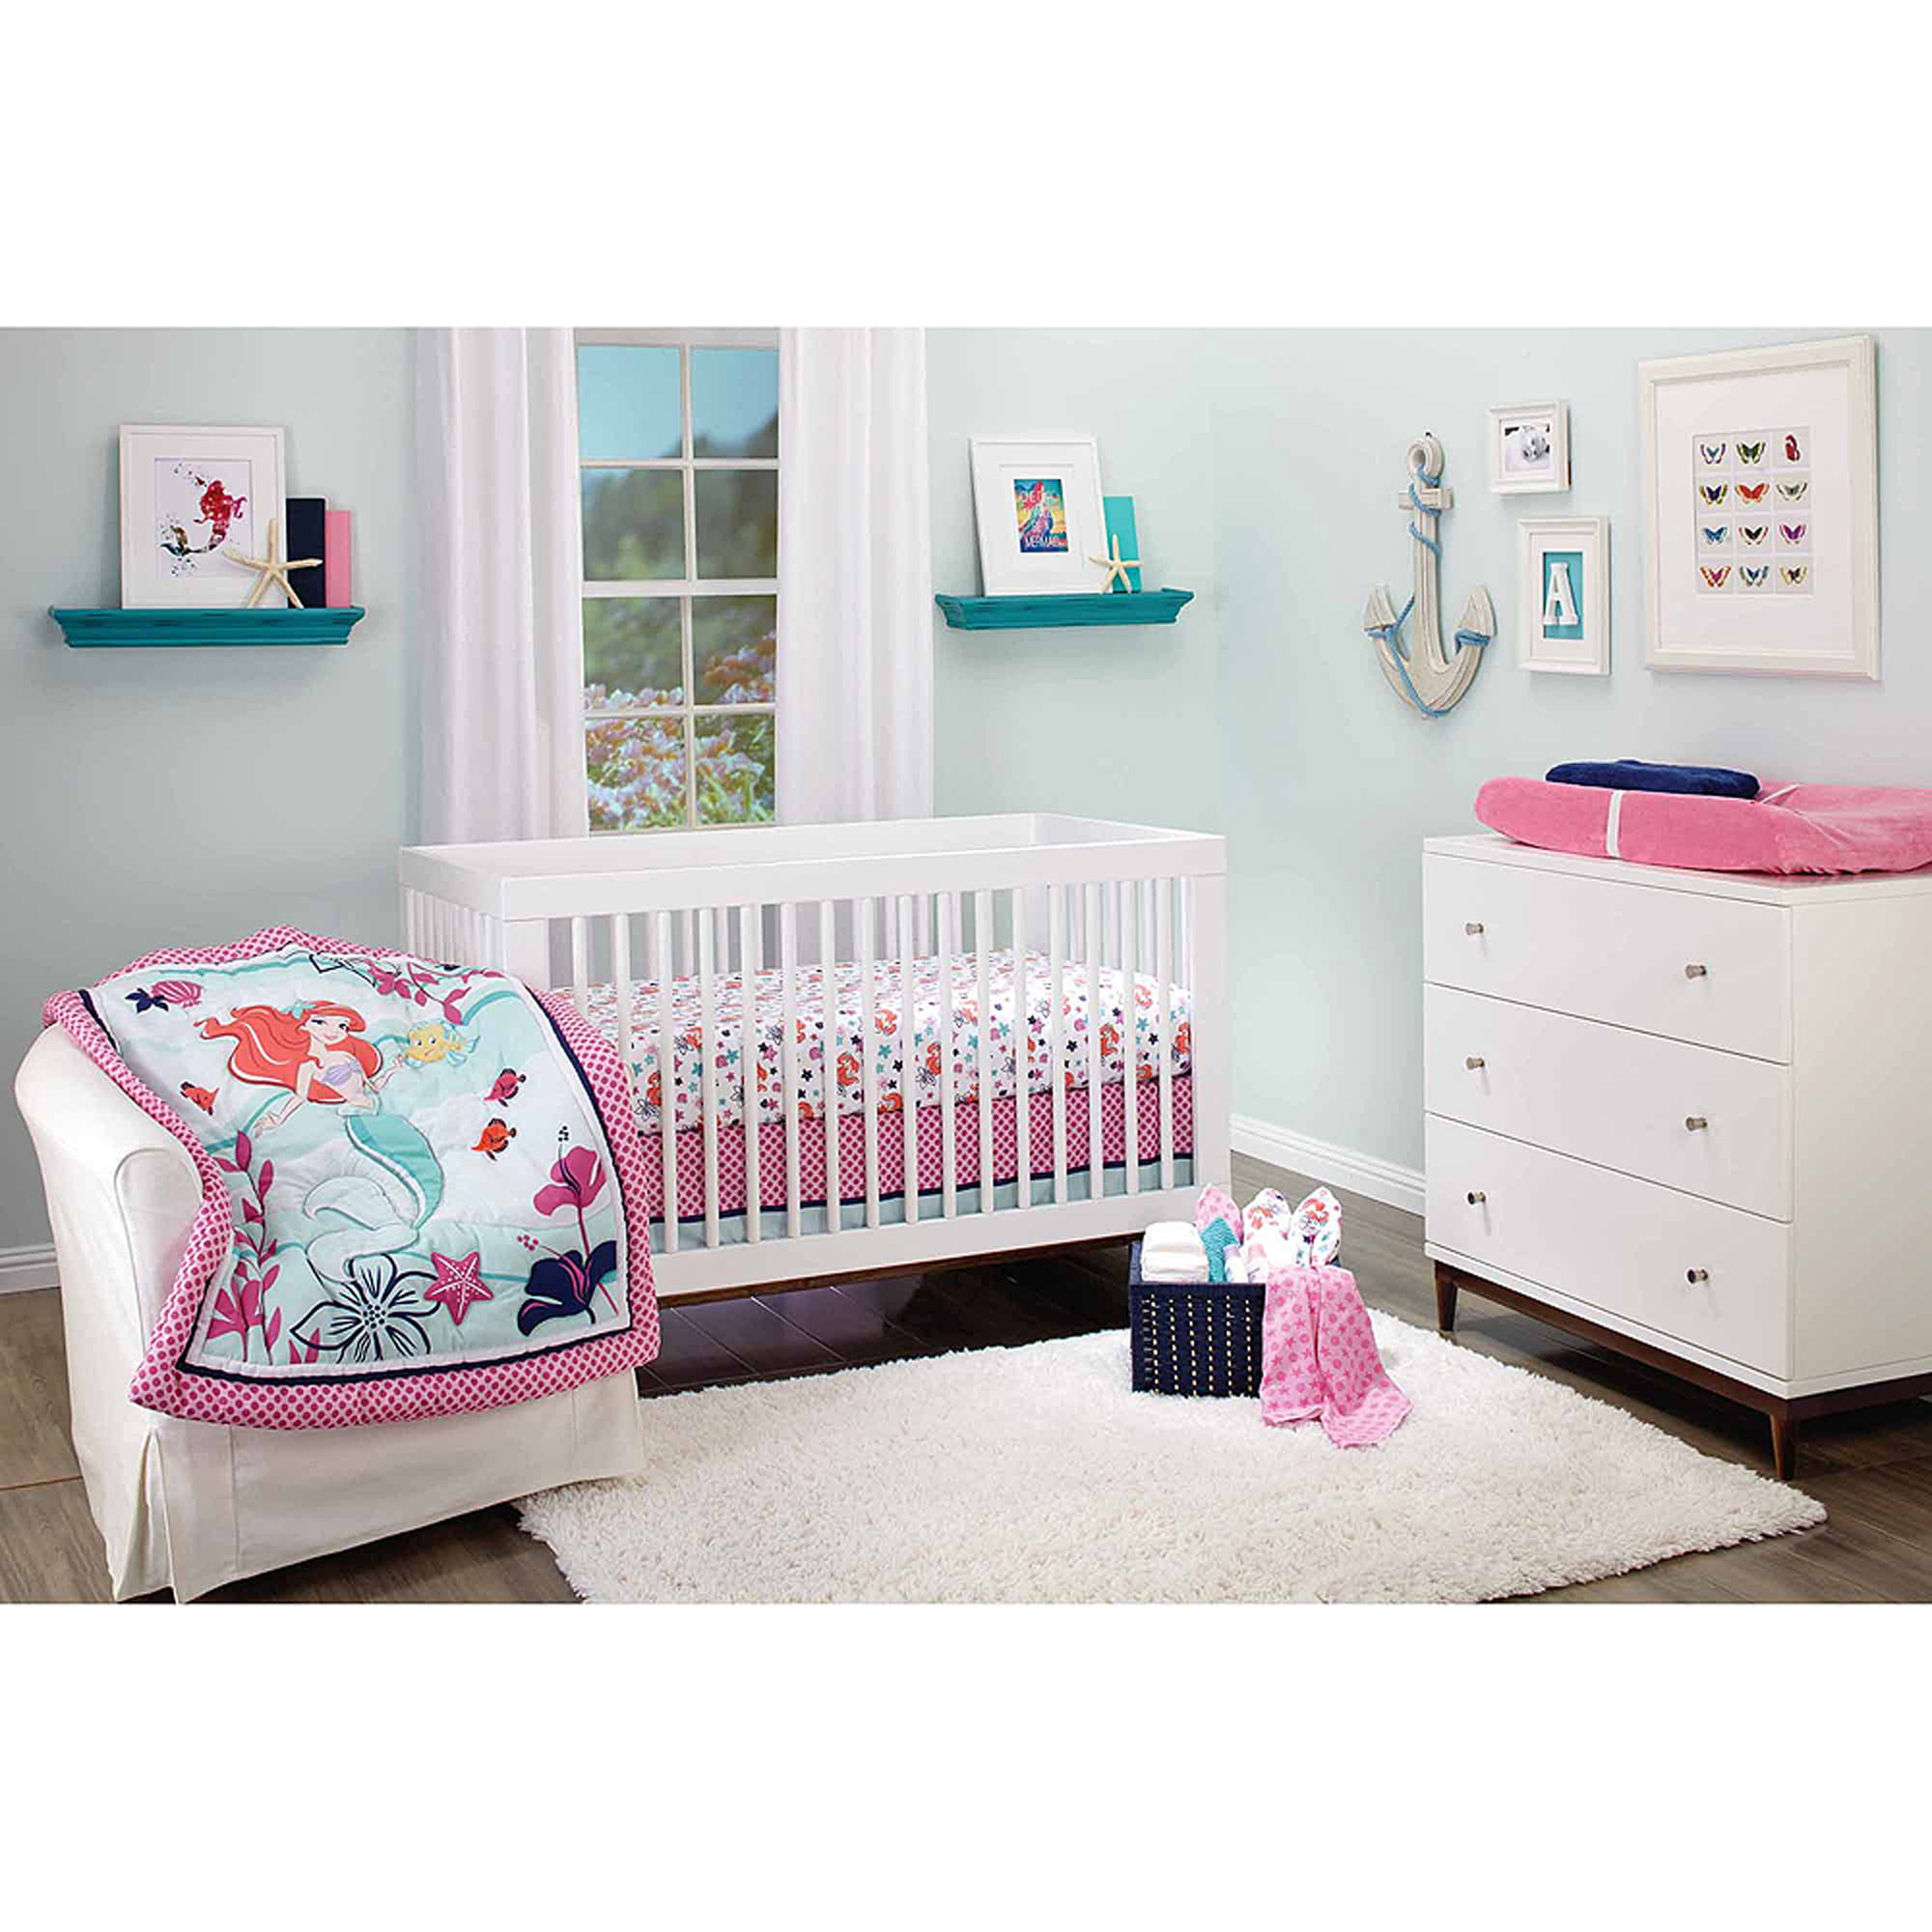 Disney Ariel Sea Treasures 3 Piece Crib Bedding Set Walmart Com Walmart Com